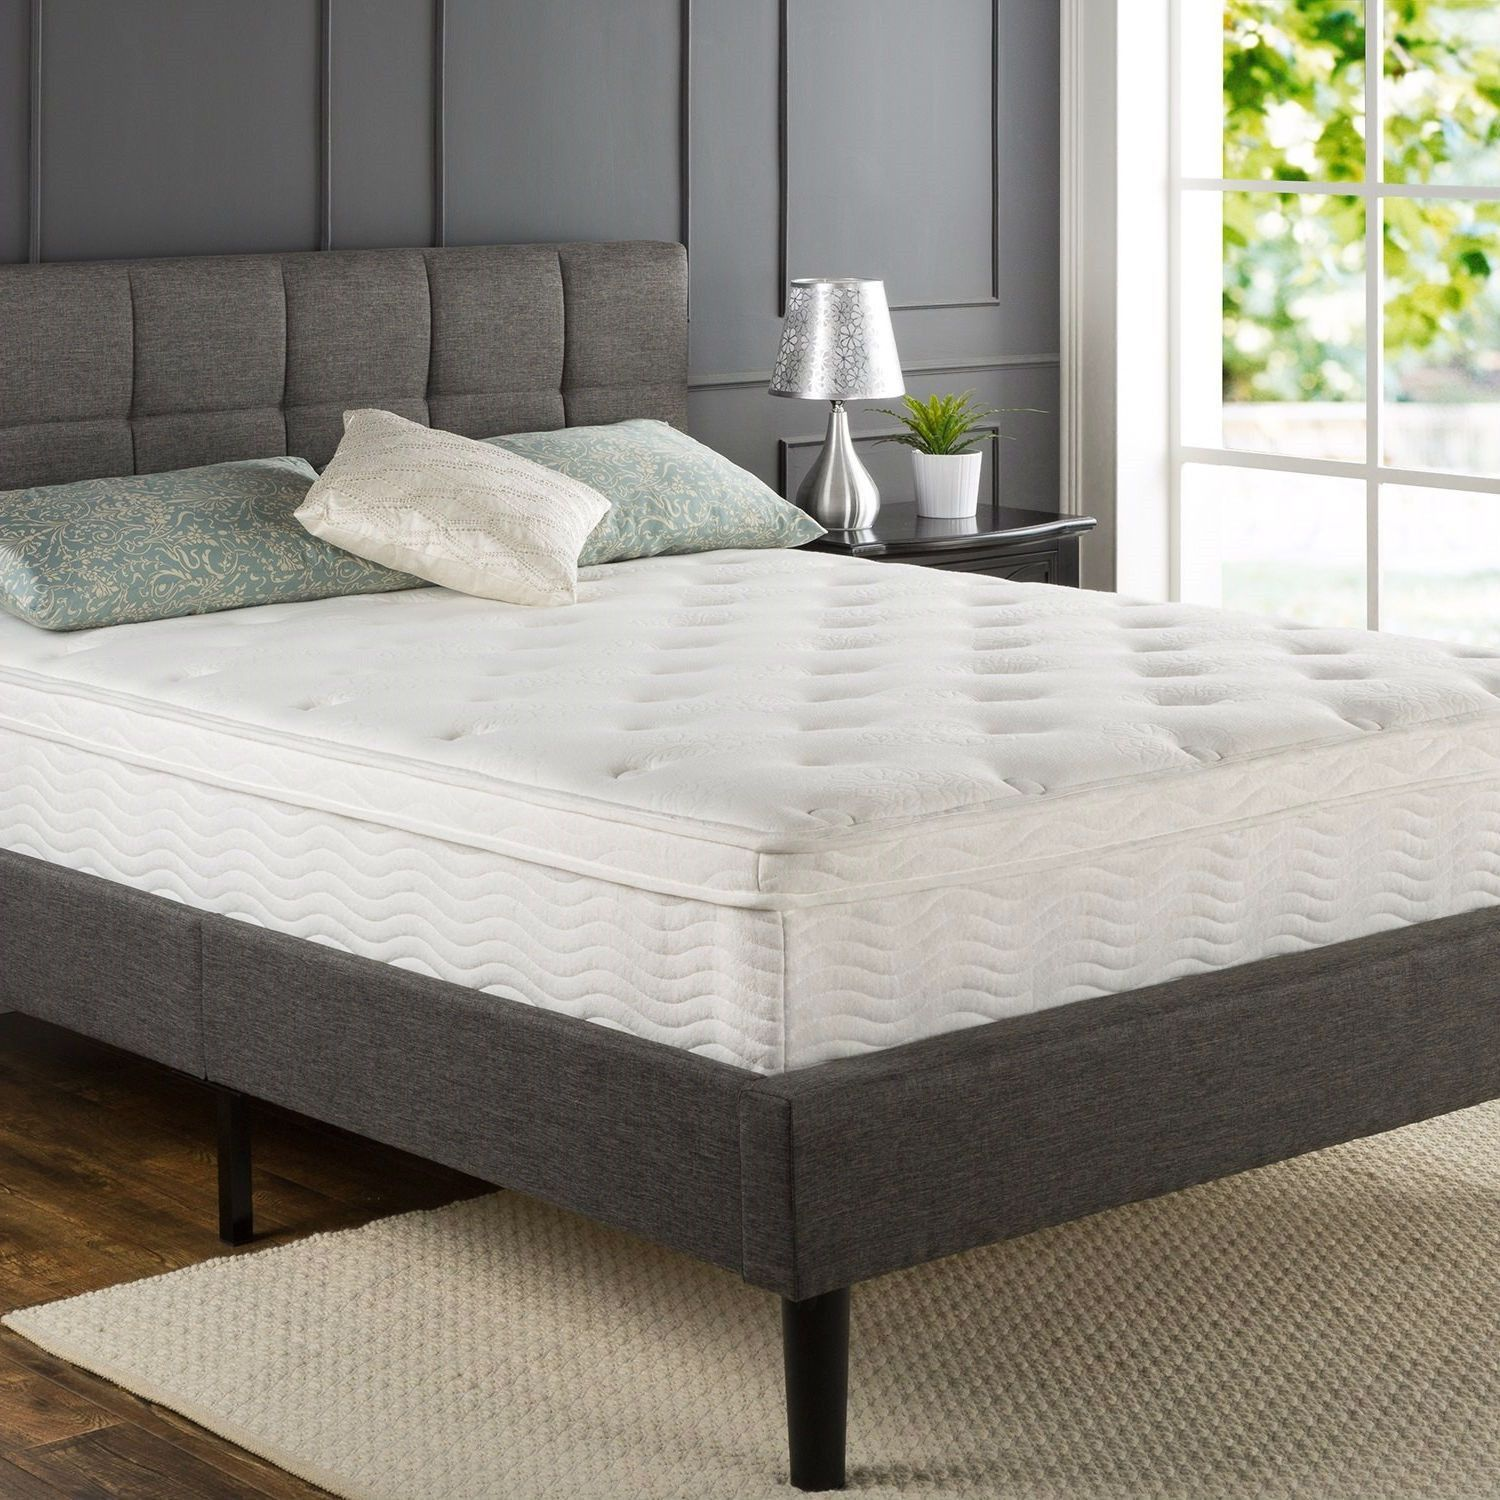 Queen size 12inch Thick Euro BoxTop Innerspring Mattress